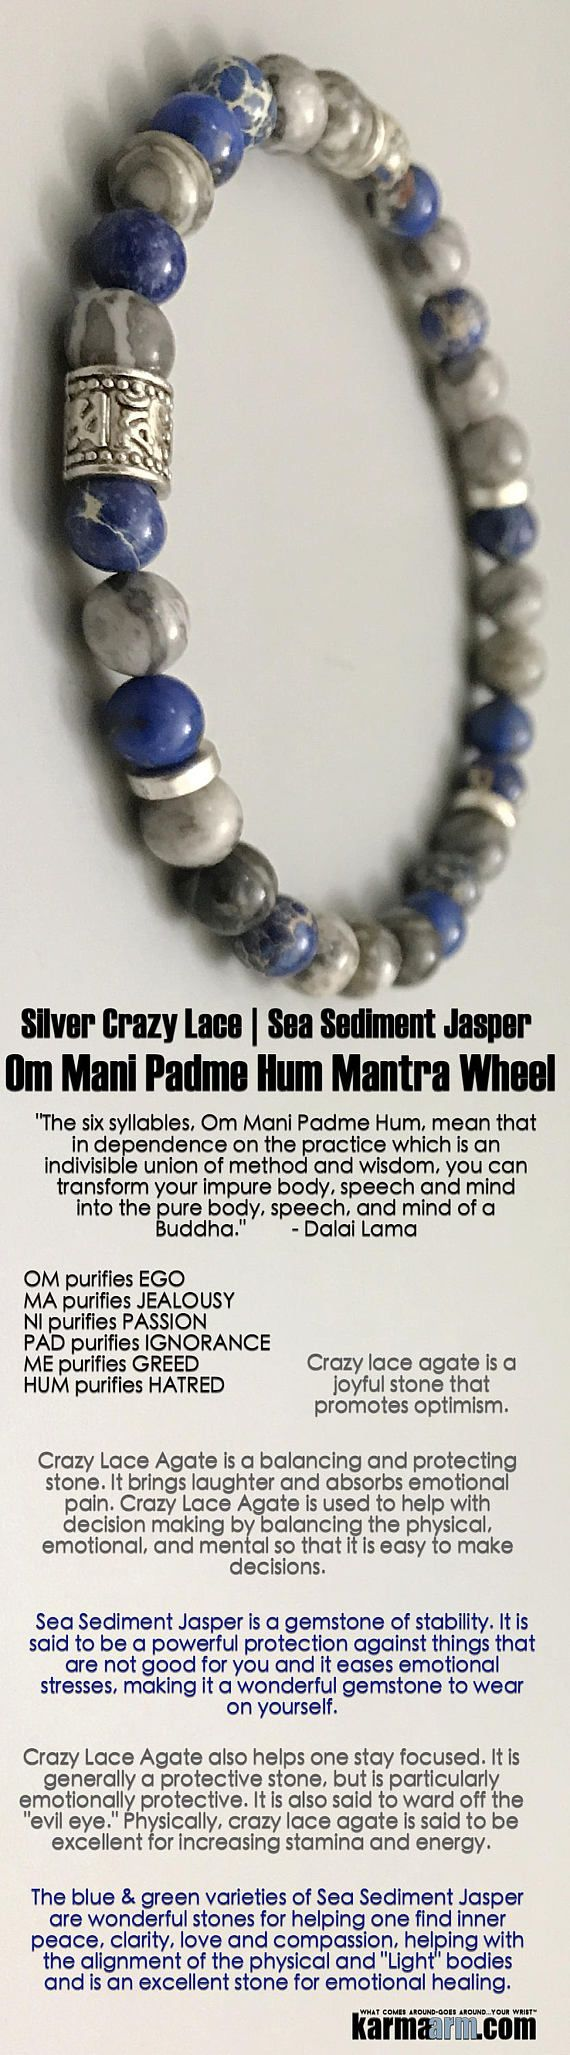 Buddhist Bracelet |                   Beaded Yoga Bracelets | Meditation Jewelry  ♛ Crazy Lace #Agate is a balancing and protecting stone, bringing laughter and absorbing emotional pain. ♛ #BEADED #Yoga #Mens #Good #Luck #womens #Jewelry #Cartier #Eckhart #Tolle #CrystalEnergy #gifts #Chakra #Reiki #Healing #Kundalini #Law #Attraction #LOA #Love #Mantra #Mala #Meditation #prayer #mindfulness #wisdom #CrystalEnergy #Spiritual #Gifts #Mommy #Blog #Tony #Robbins #friendship #Stacks #Lucky